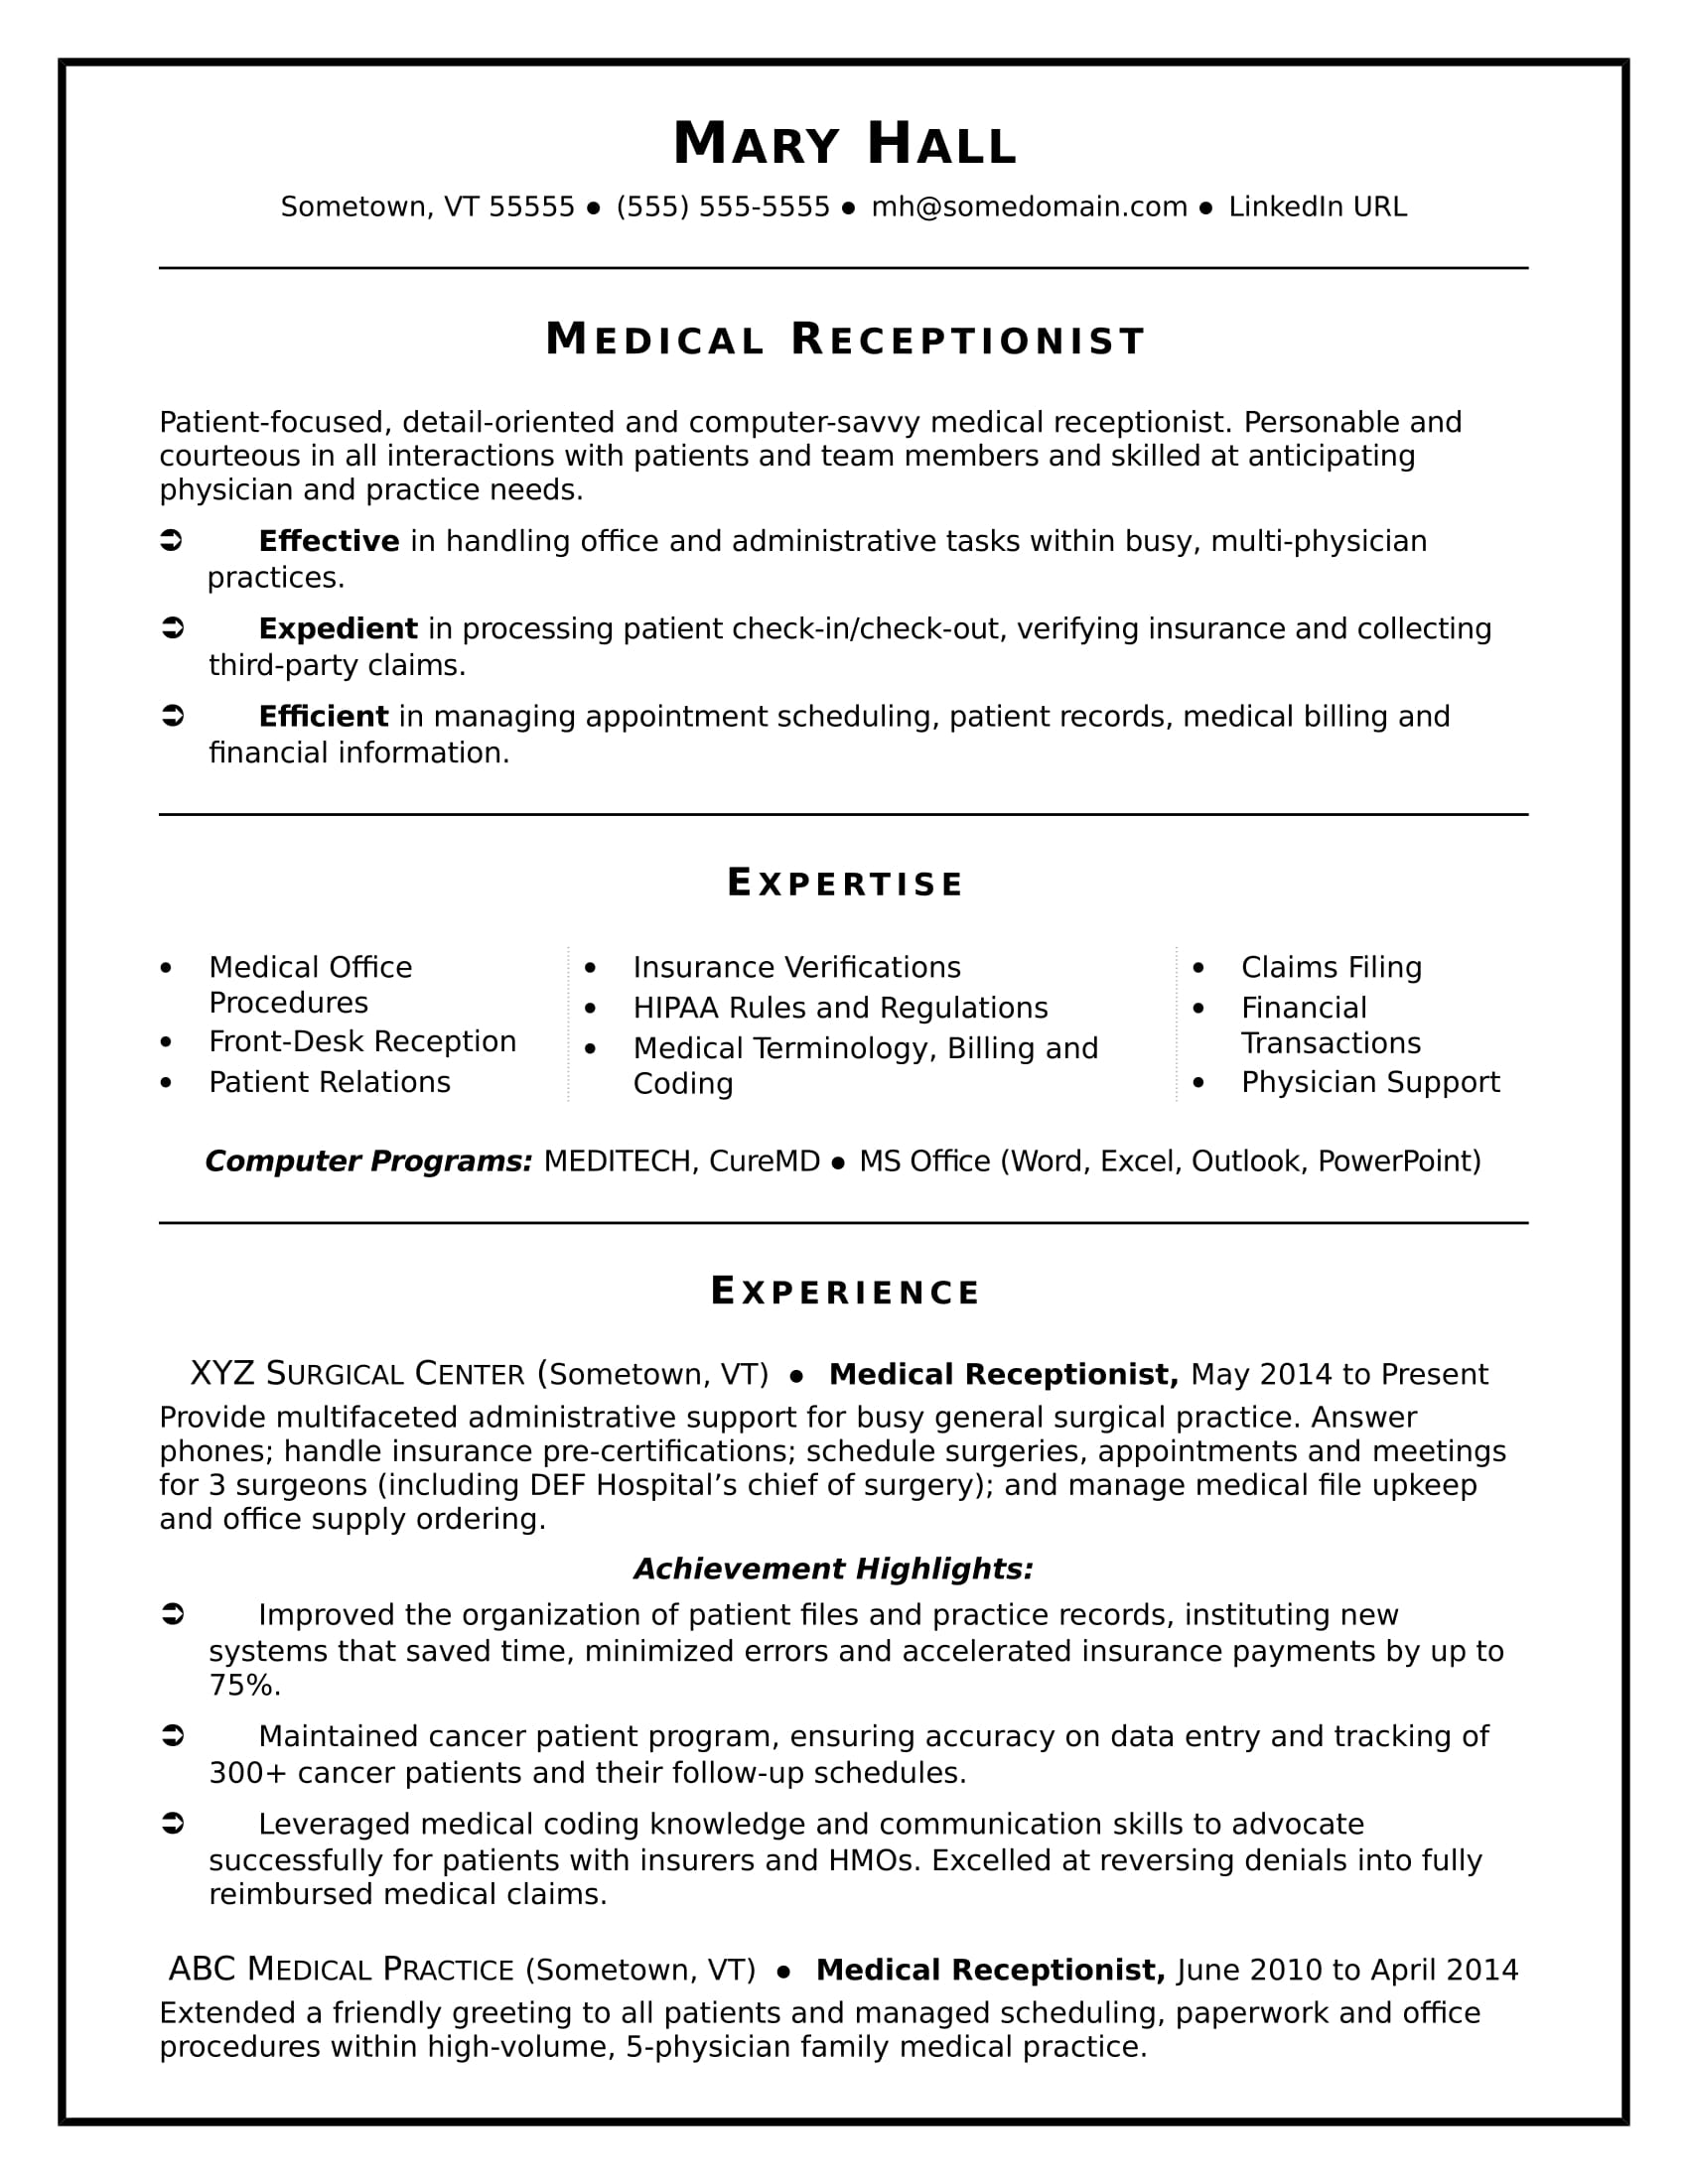 Medical Receptionist Resume Sample  Resume Example For Receptionist